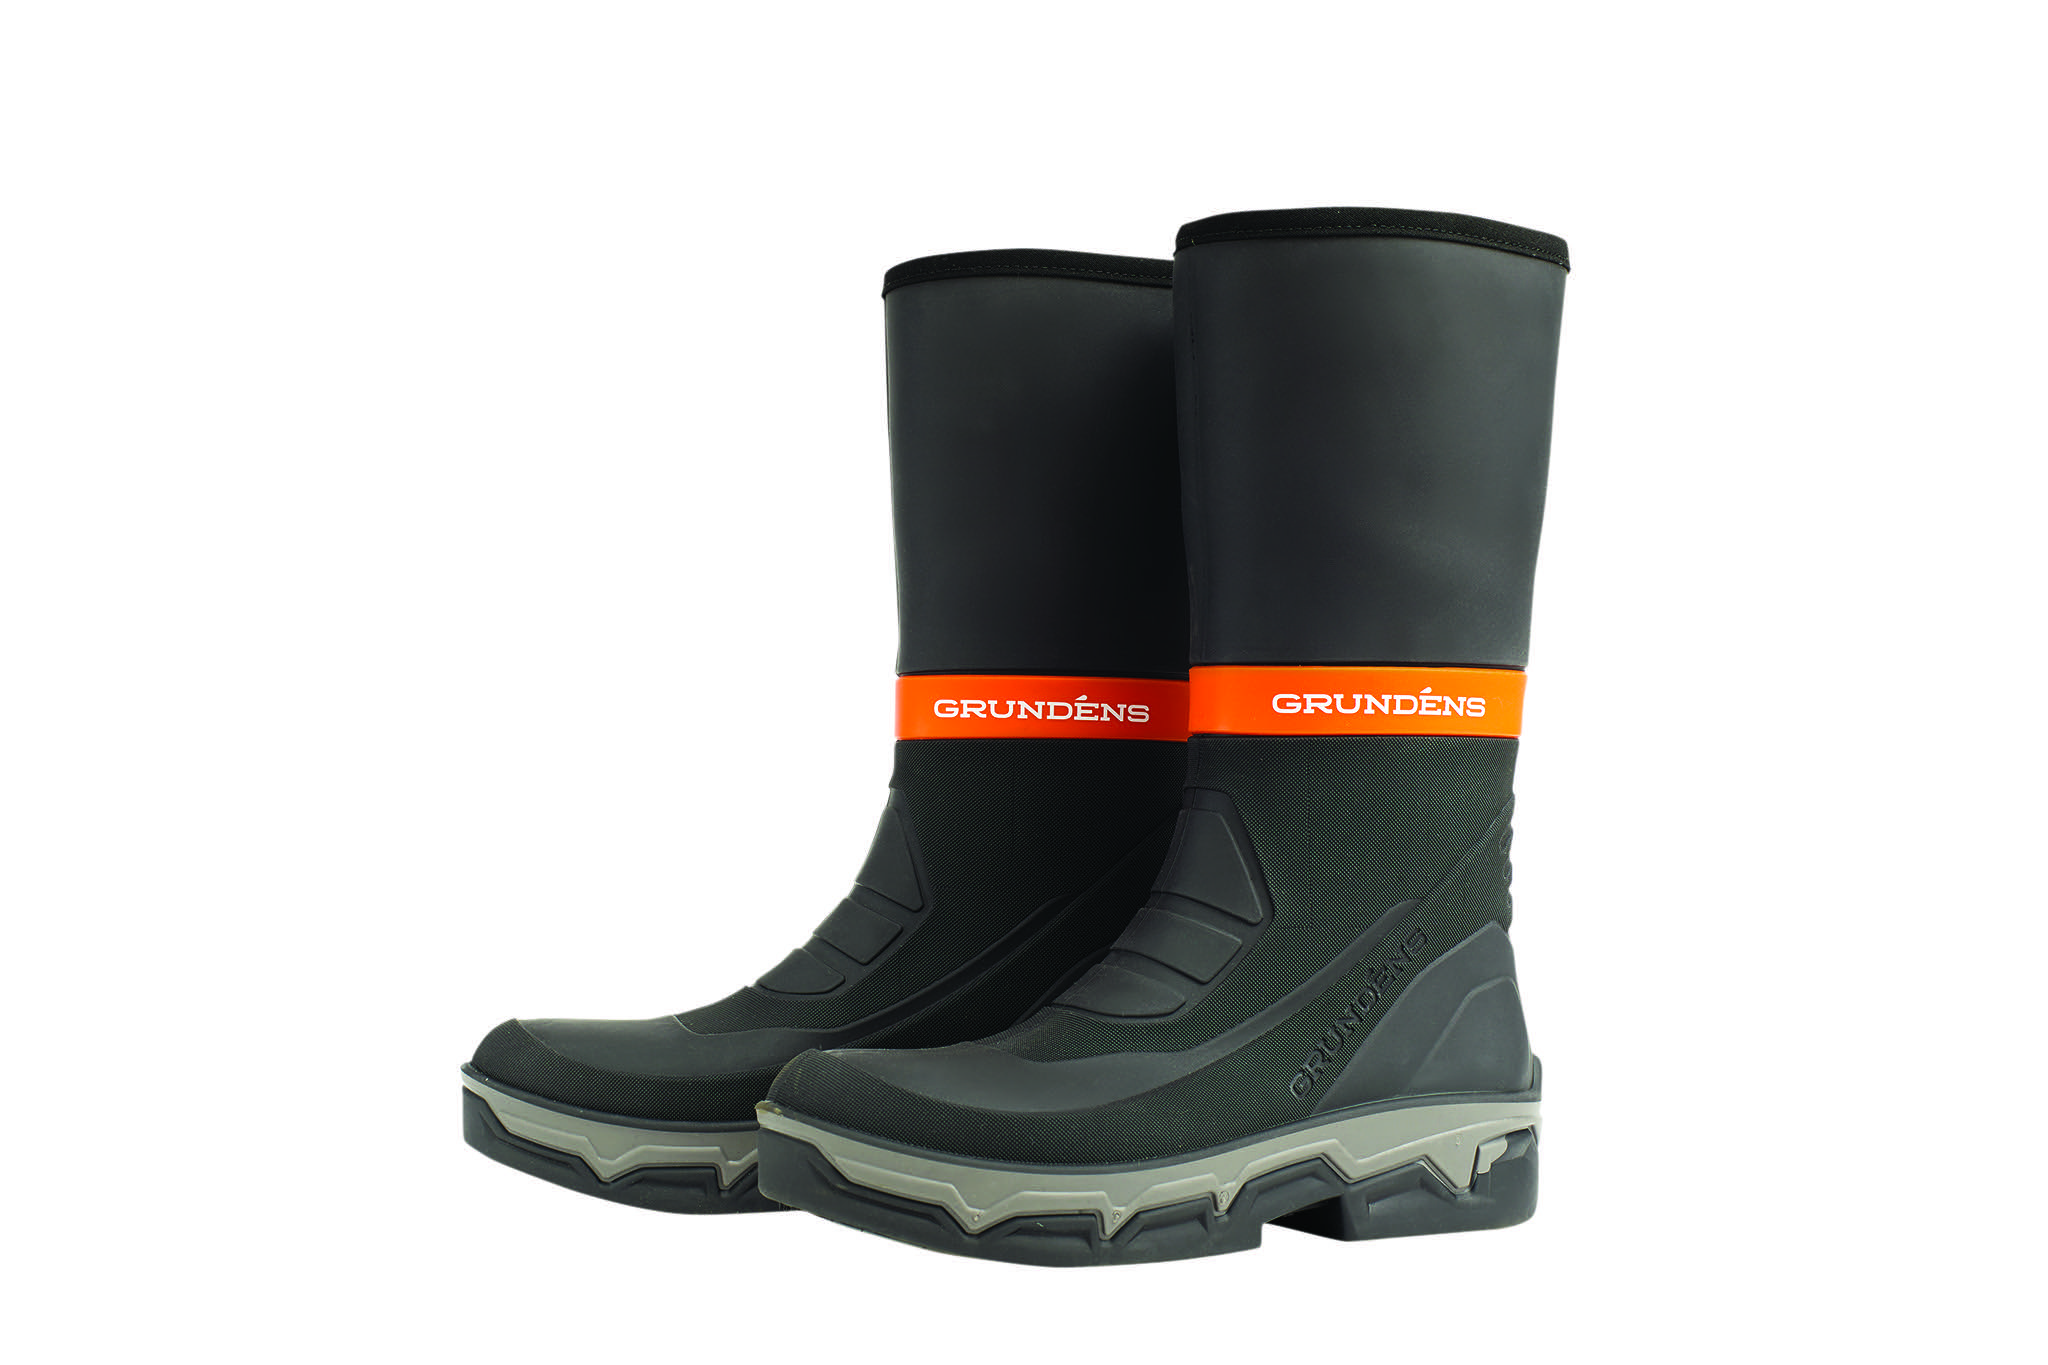 Grundéns Deck-Boss Boot Insulated